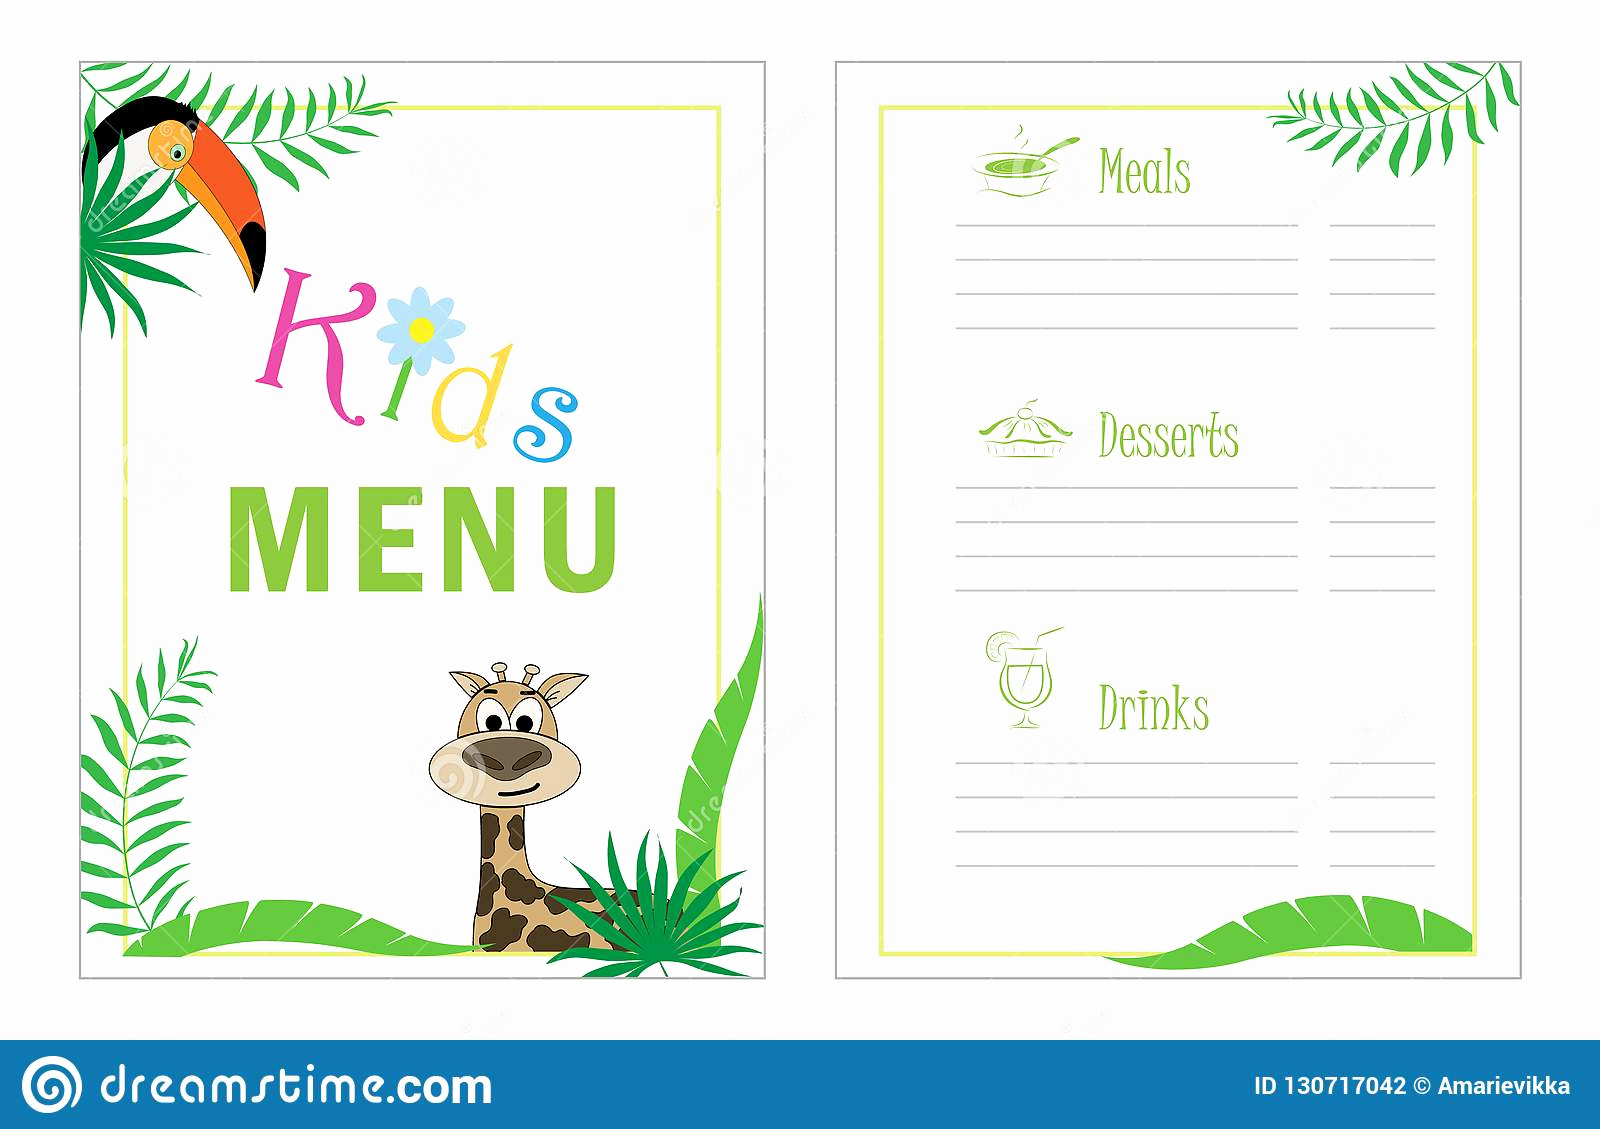 Free Kid Menu Template Lovely Childrens Menu Template Cafe Menu Design for Kids Kid